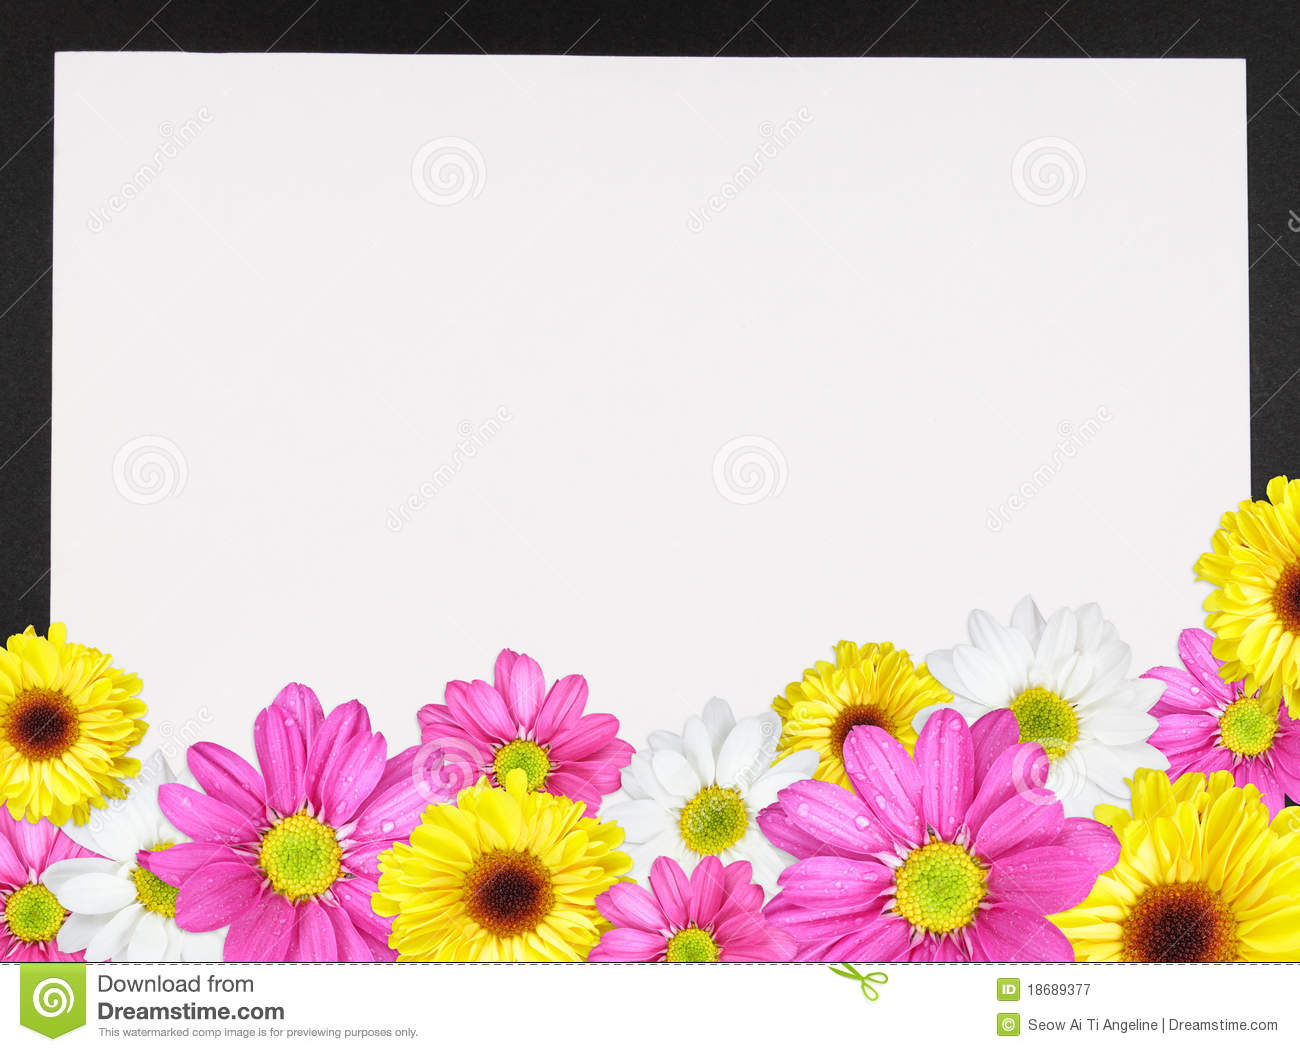 Daisy Border 2 Royalty Free Stock Photography - Image: 18689377